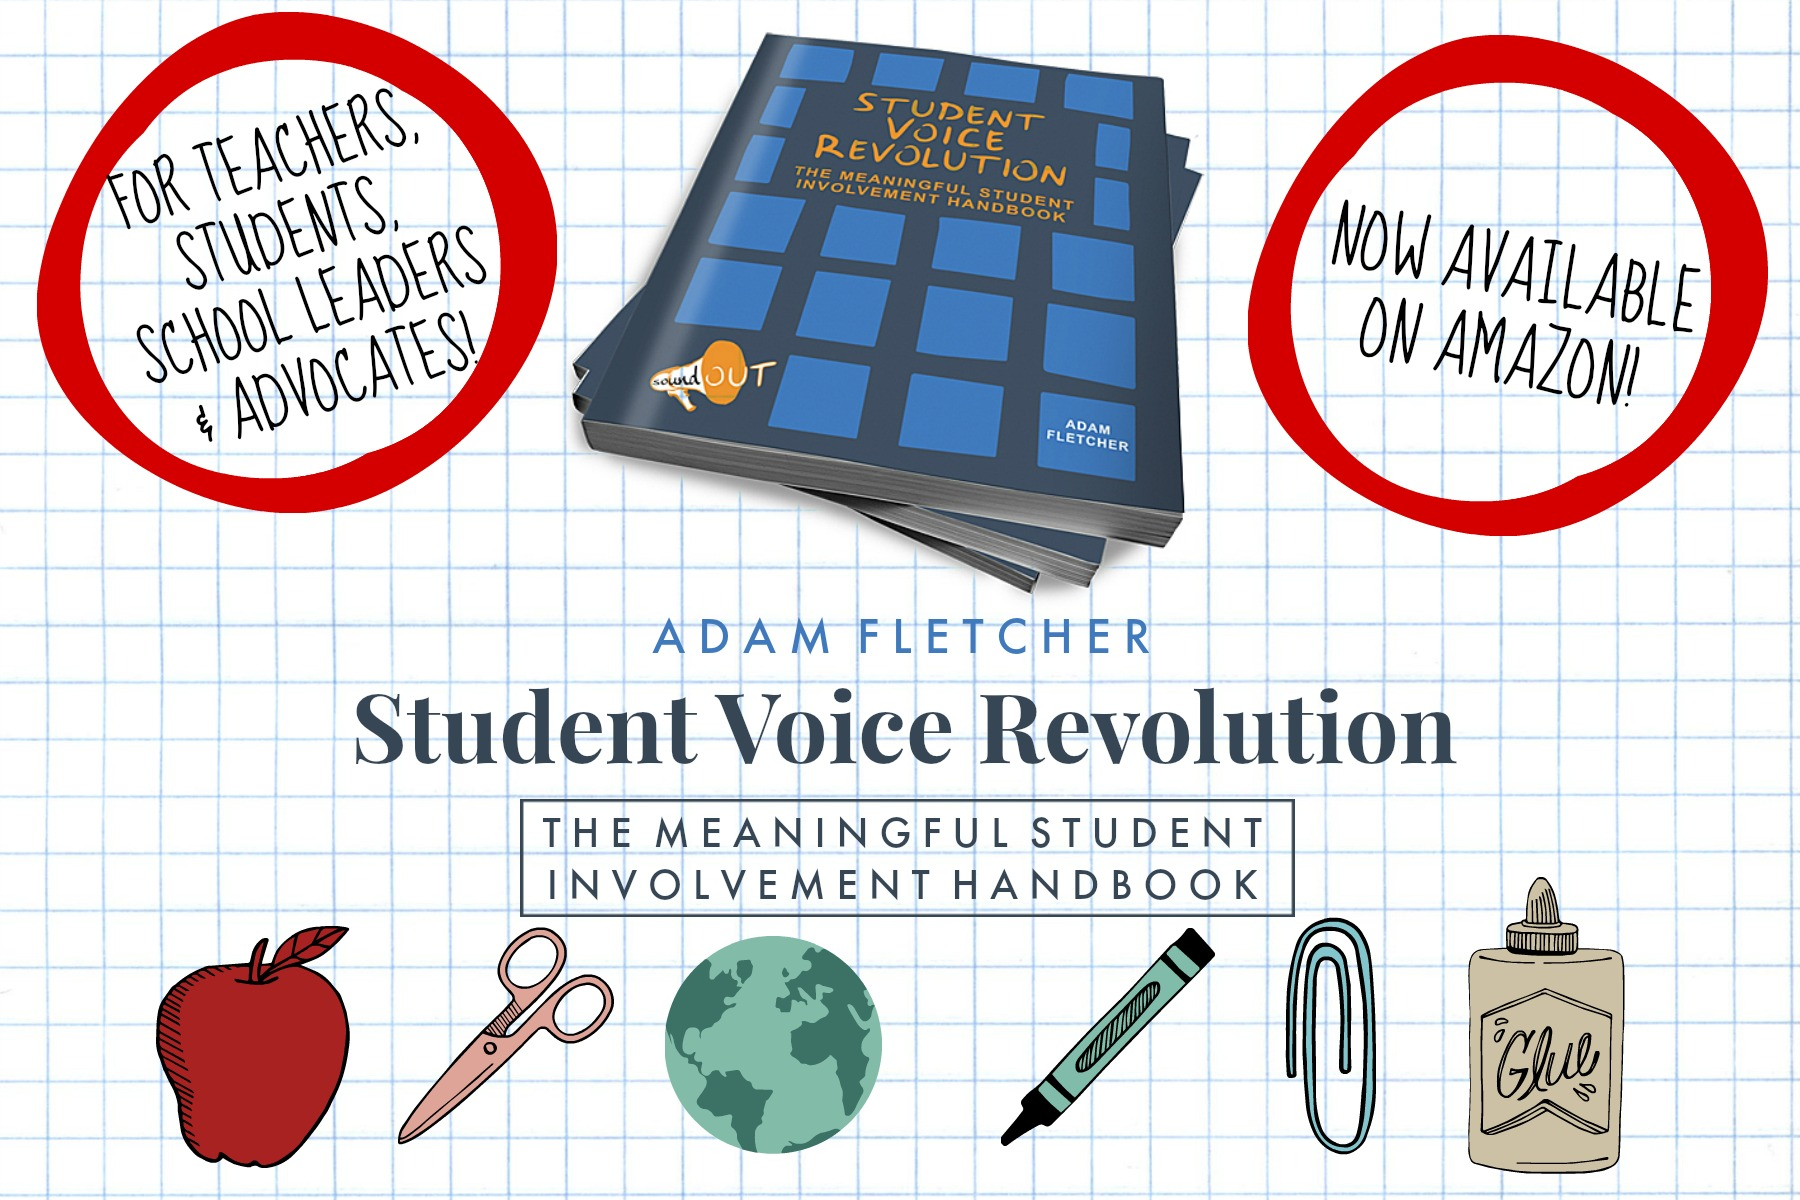 Student Voice Revolution: The Meaningful Student Involvement Handbook written by Adam Fletcher published by CommonAction Publishing in 2017.